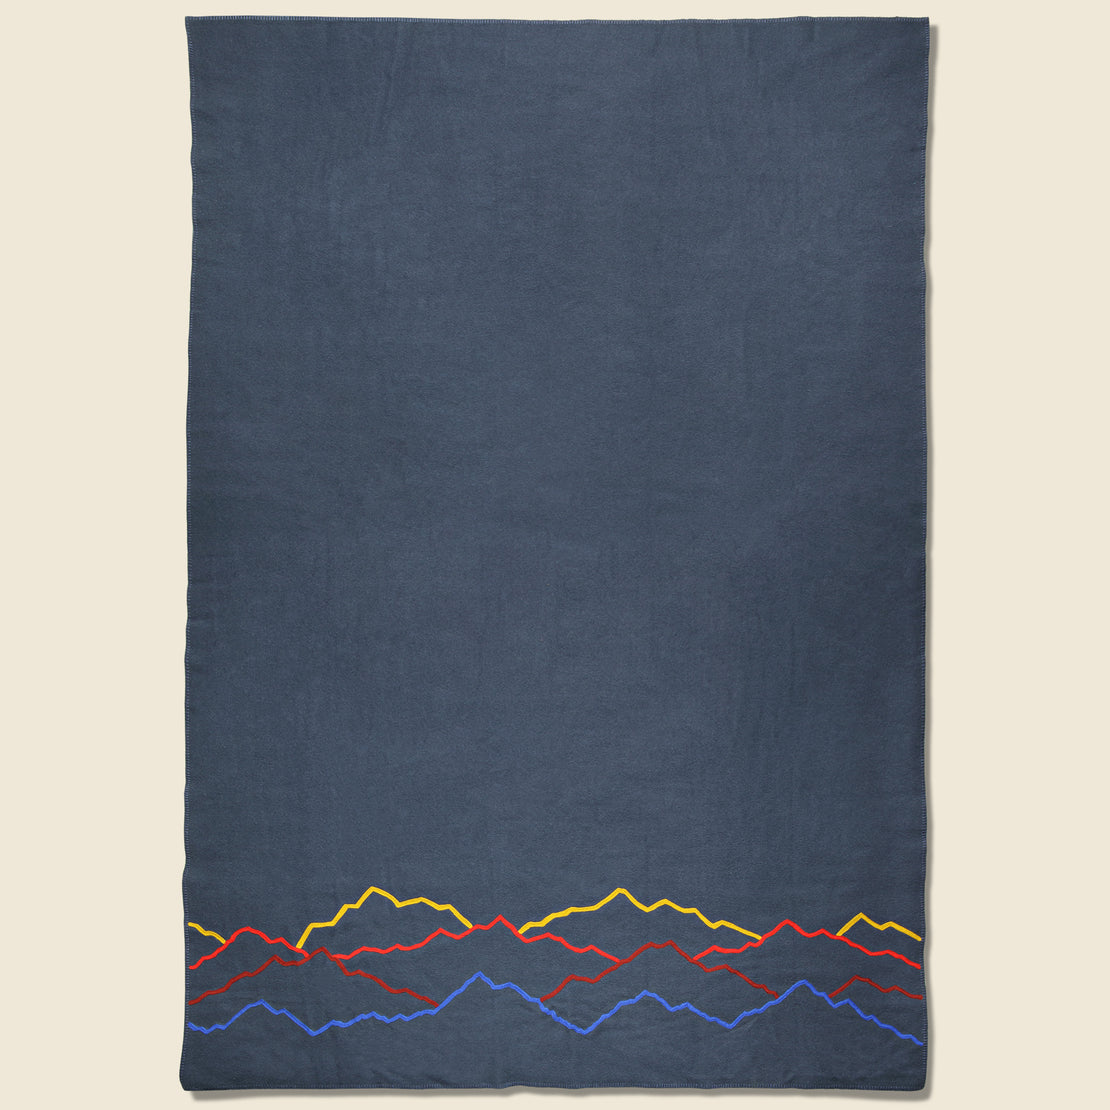 Fort Lonesome Mountain Landscape Large Wool Blanket - Navy